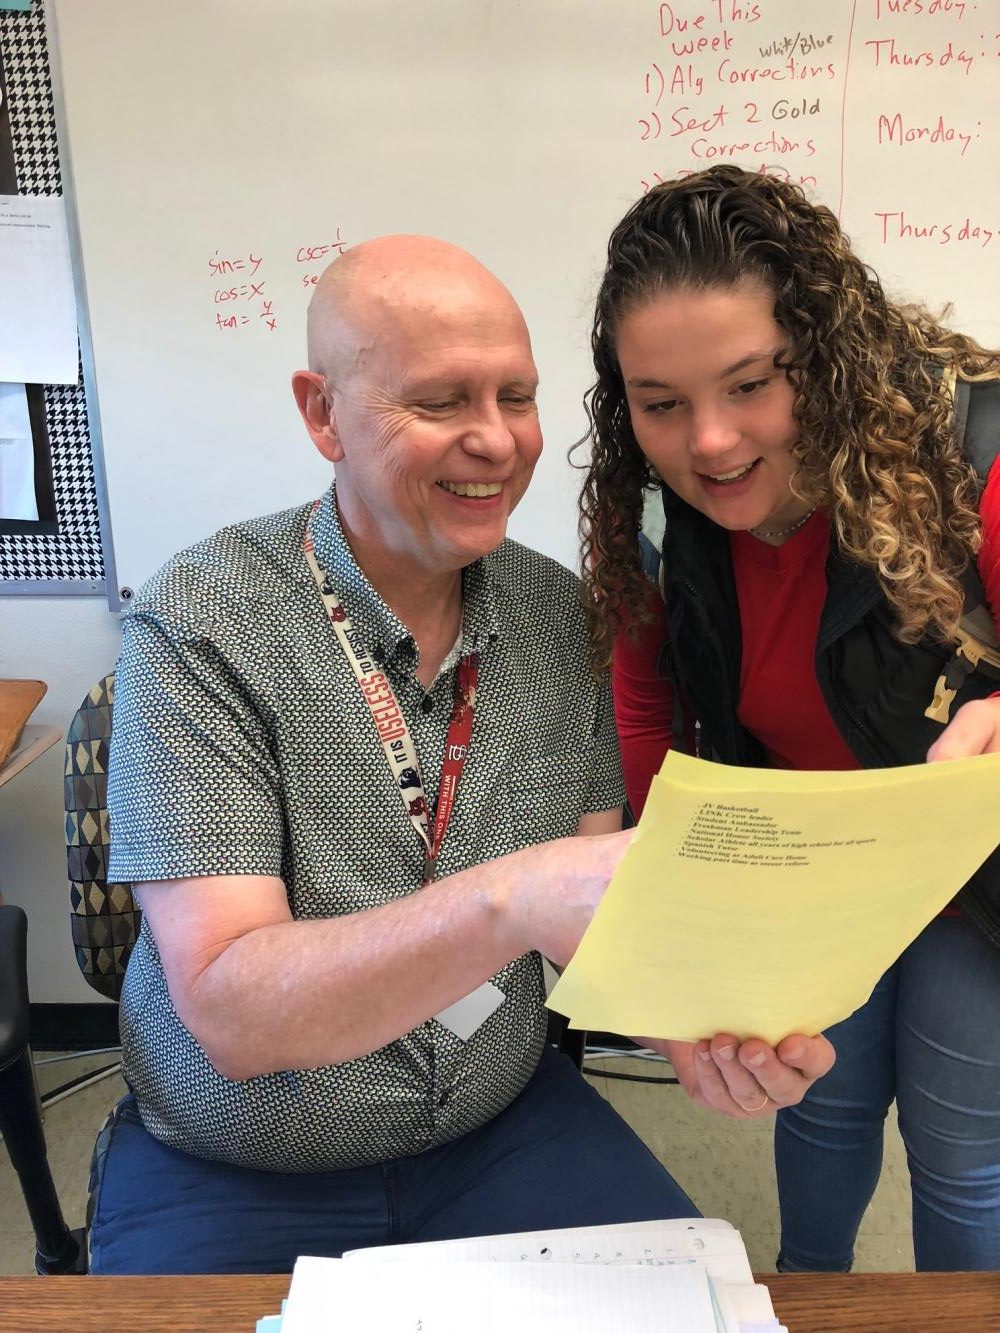 Mr. Swanson's favorite part of his job is working with students, pictured here with senior Megan Lyver.